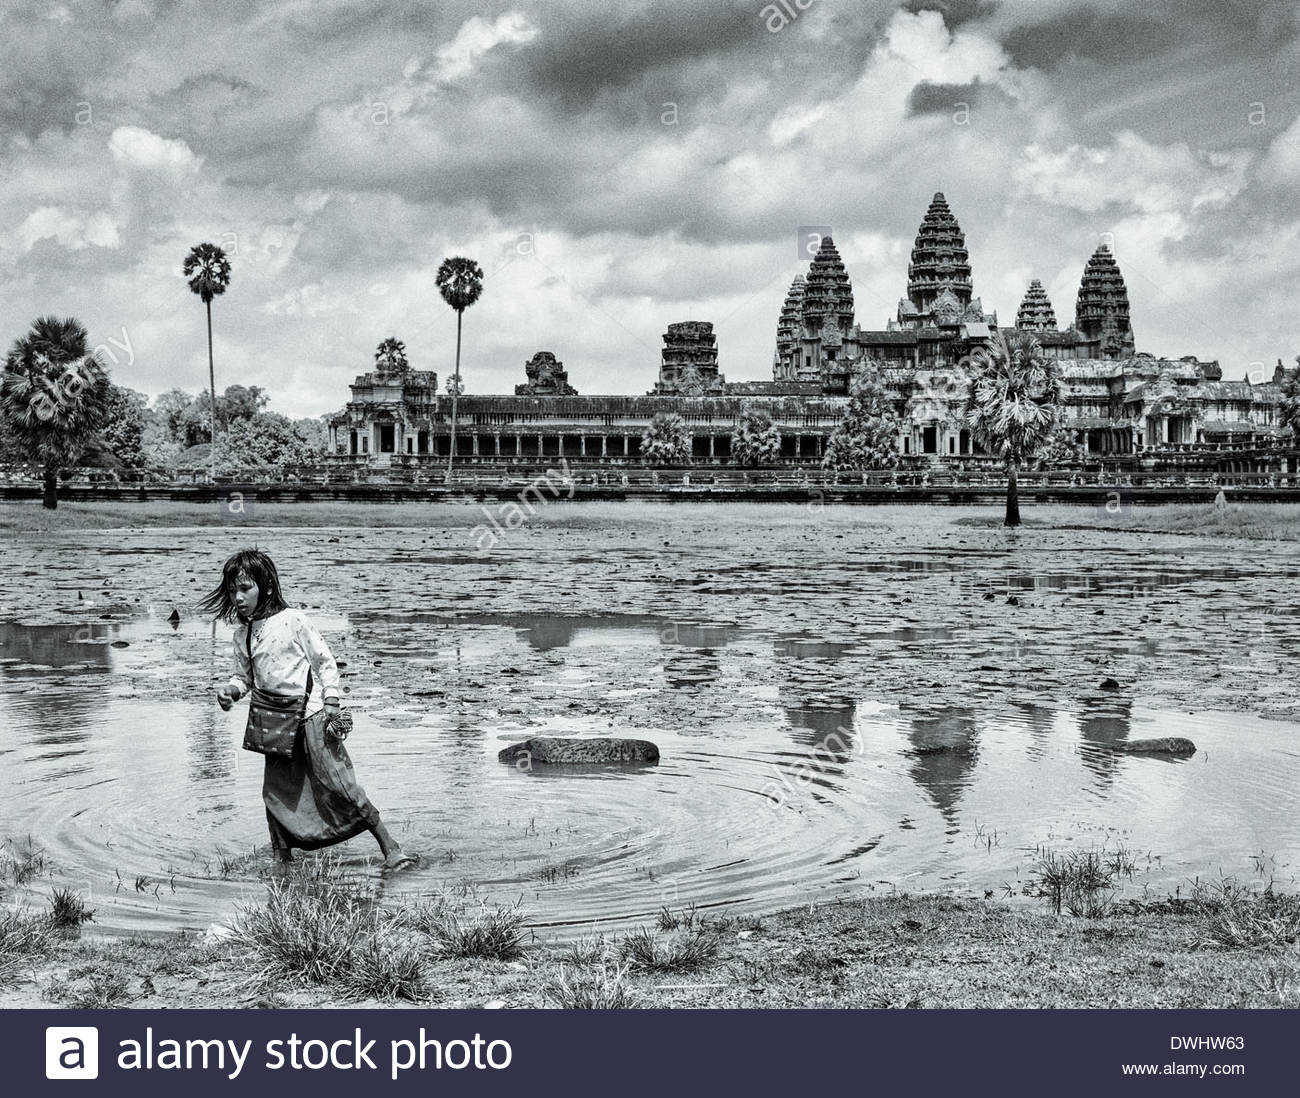 A girl walks through one of the lotus ponds in front of Angkor Wat, Siem Reap province, Cambodia, South East Asia. - Stock Image